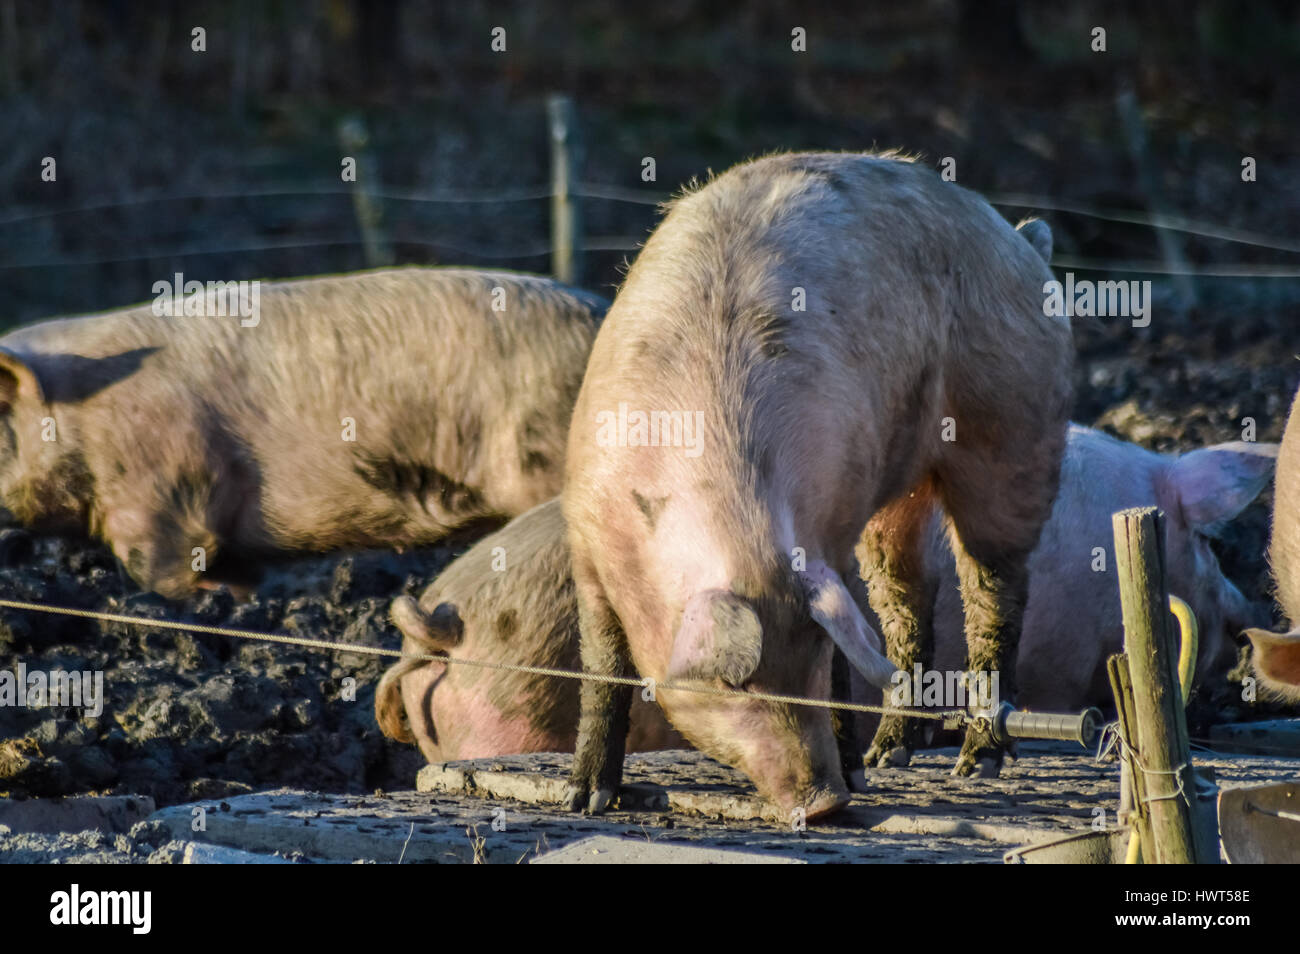 Dirty pigs outdoor in winter light closeup Stock Photo